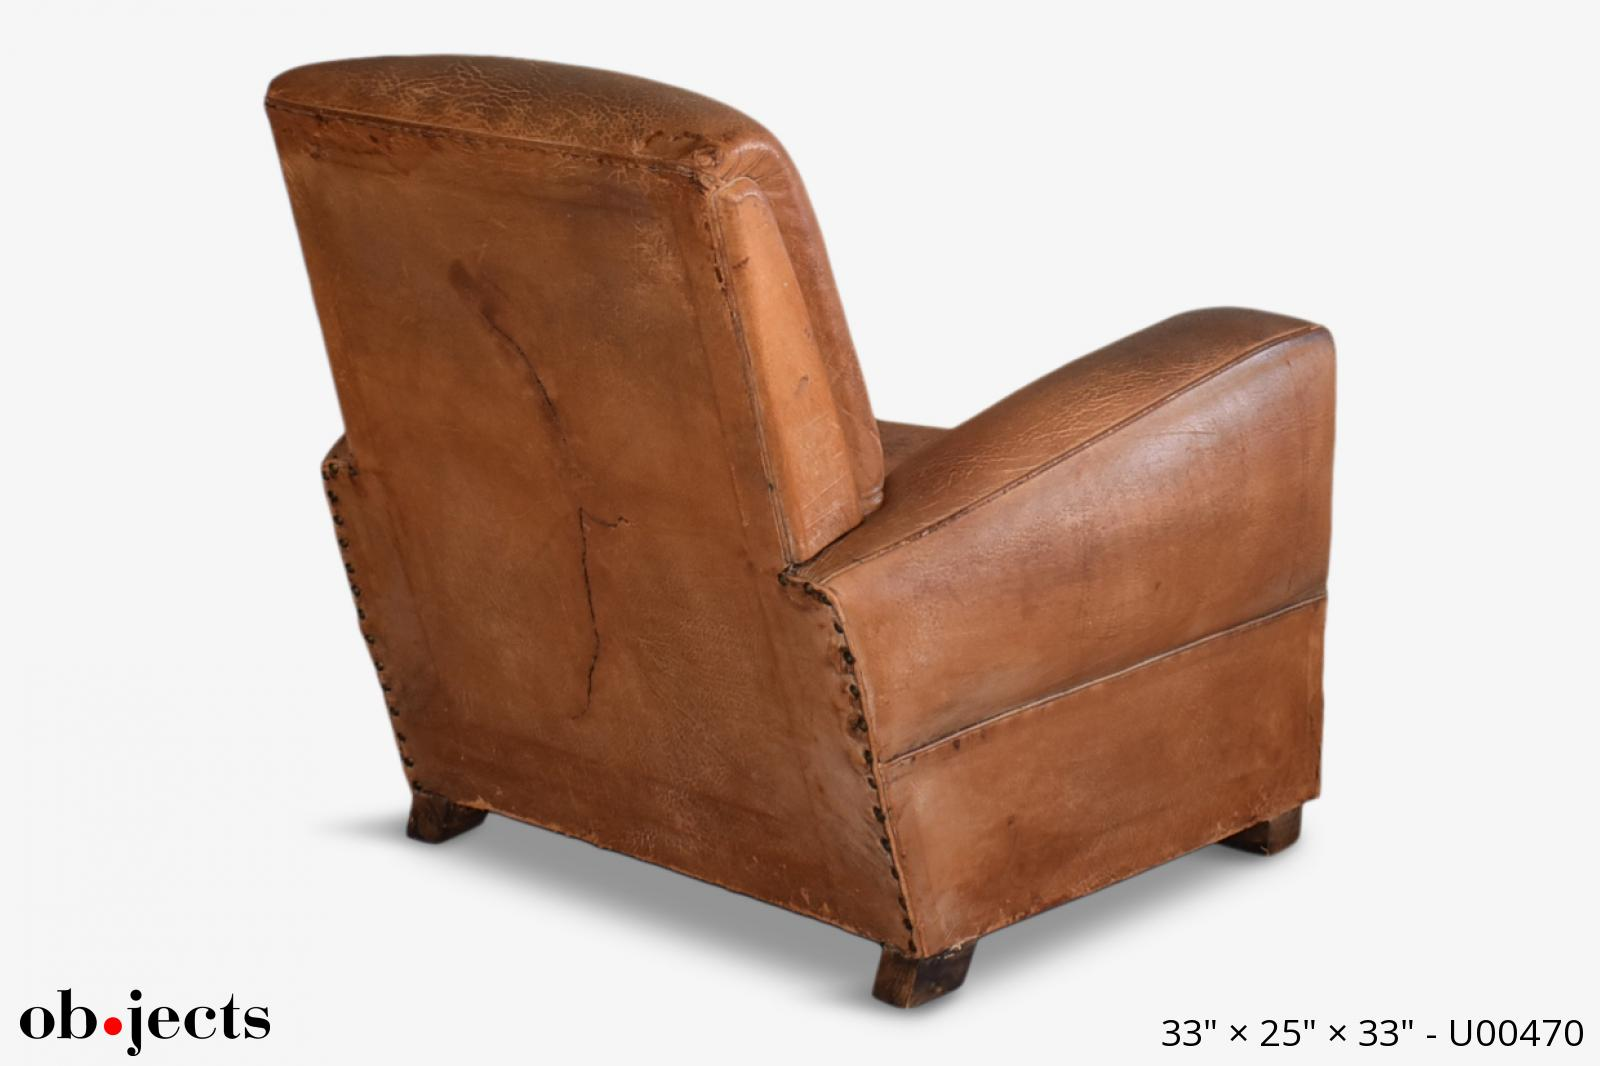 Astounding Chair Club Vintage Cognac Distressed Leather Objects Camellatalisay Diy Chair Ideas Camellatalisaycom